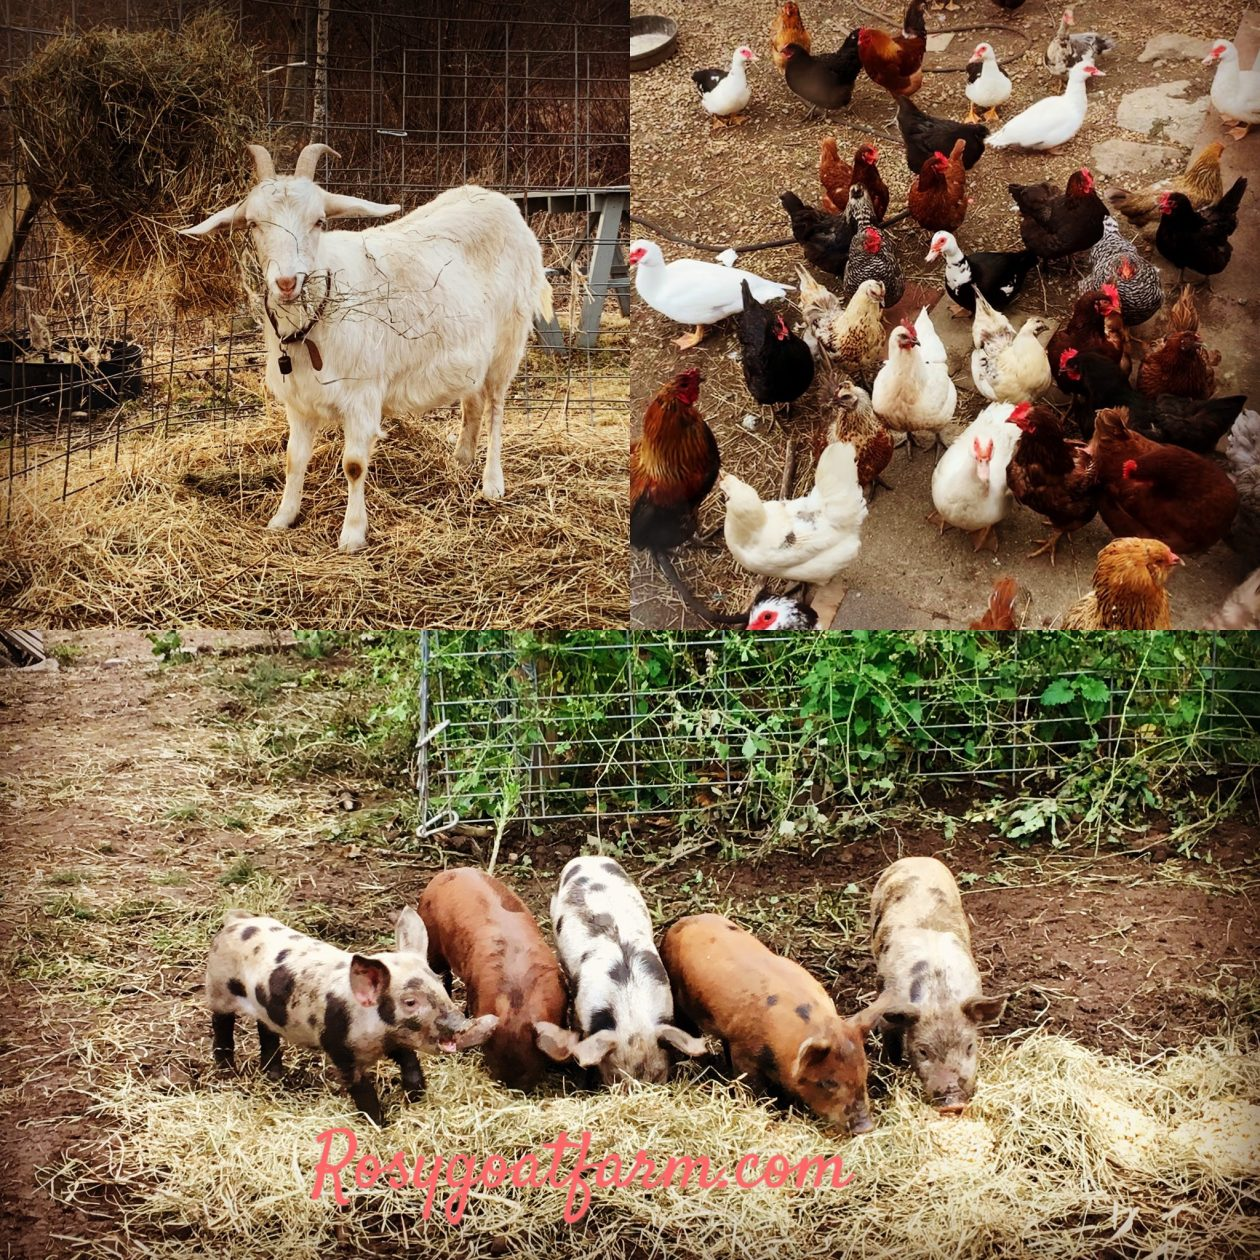 Rosy Goat Farm – a small family farm in Gilbertville, MA